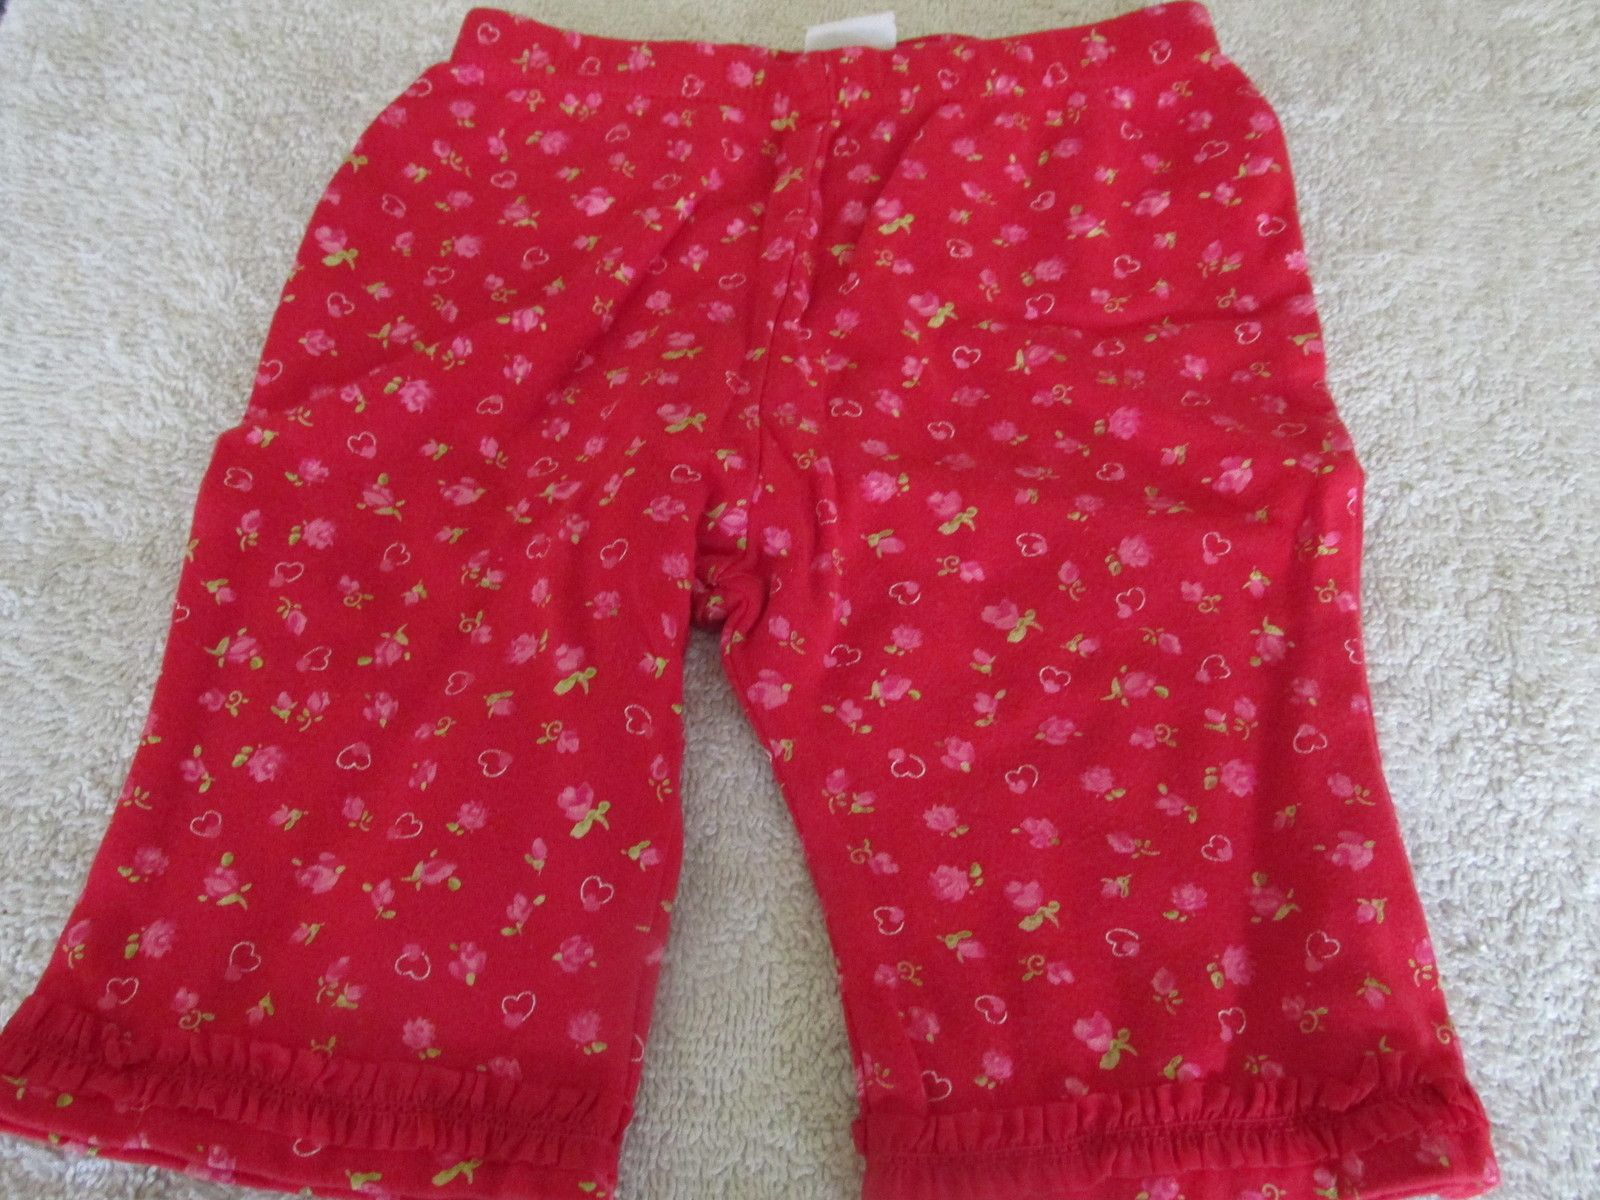 Okie Dokie Baby Pants Red W Hearts And Flowers 0 3 Mos